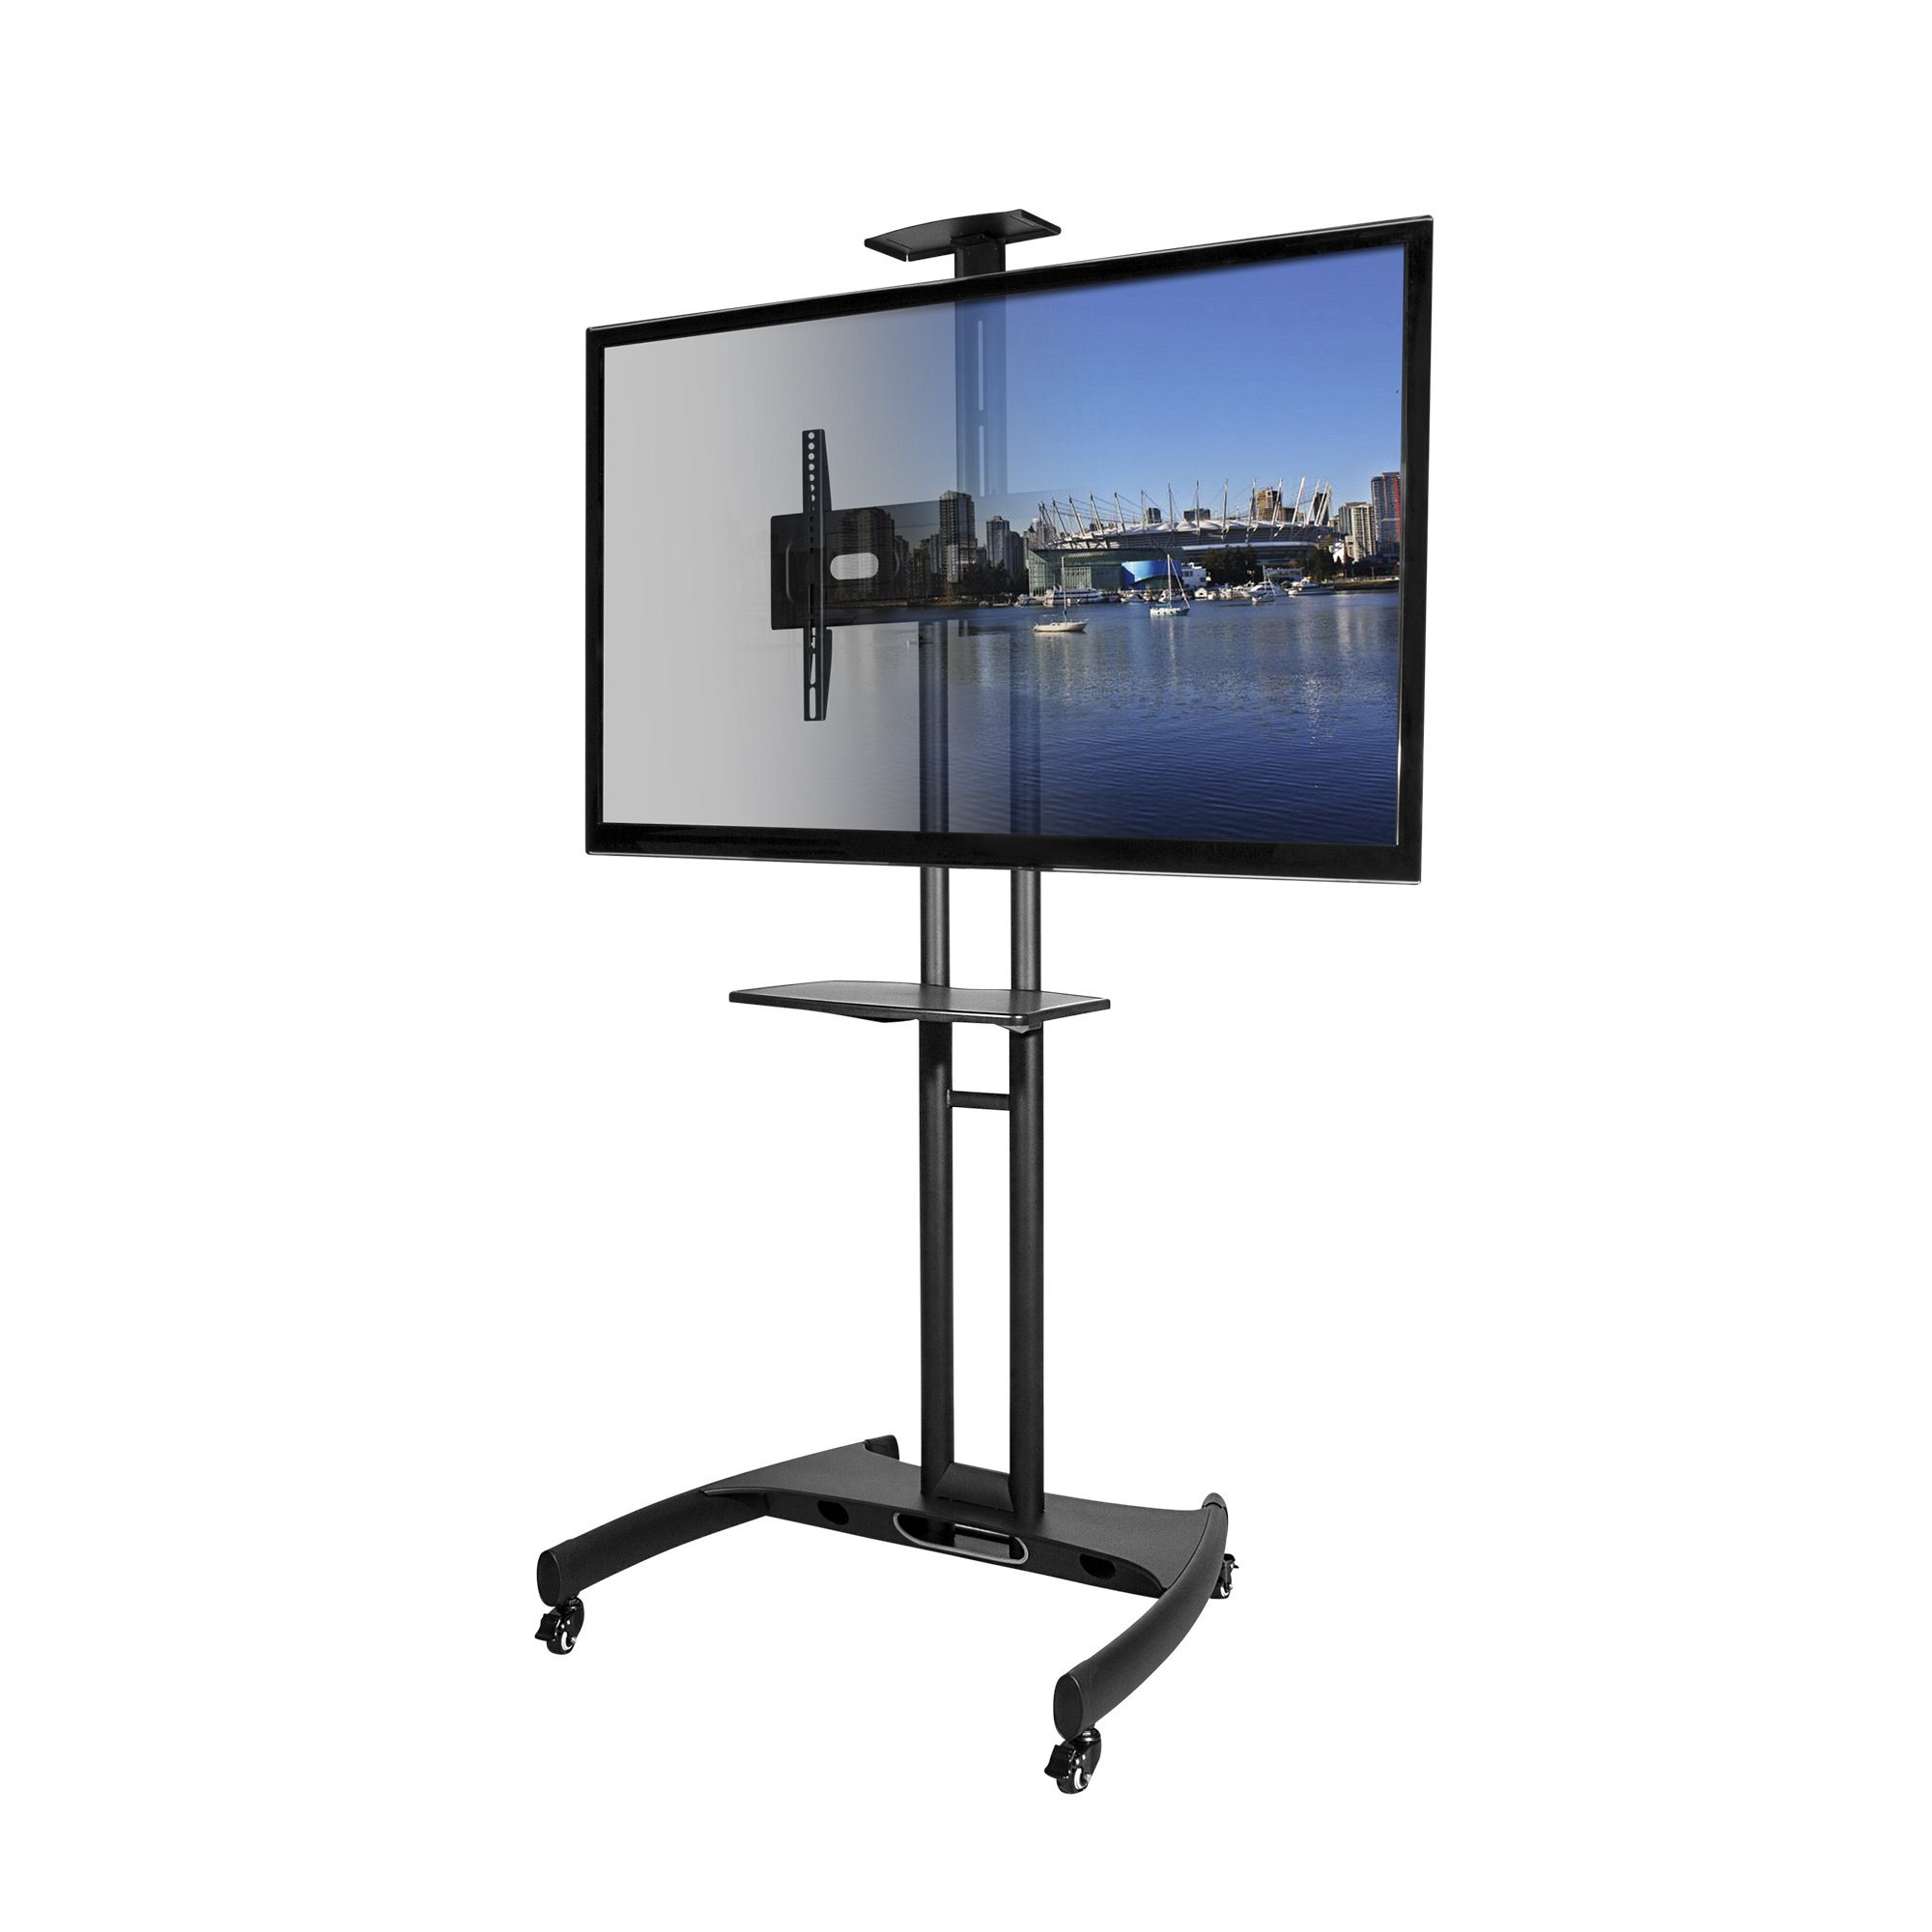 Kanto MTM65PL Mobile TV Stand with Mount for 37 to 65 inch Flat Panel Screens - Black by Kanto